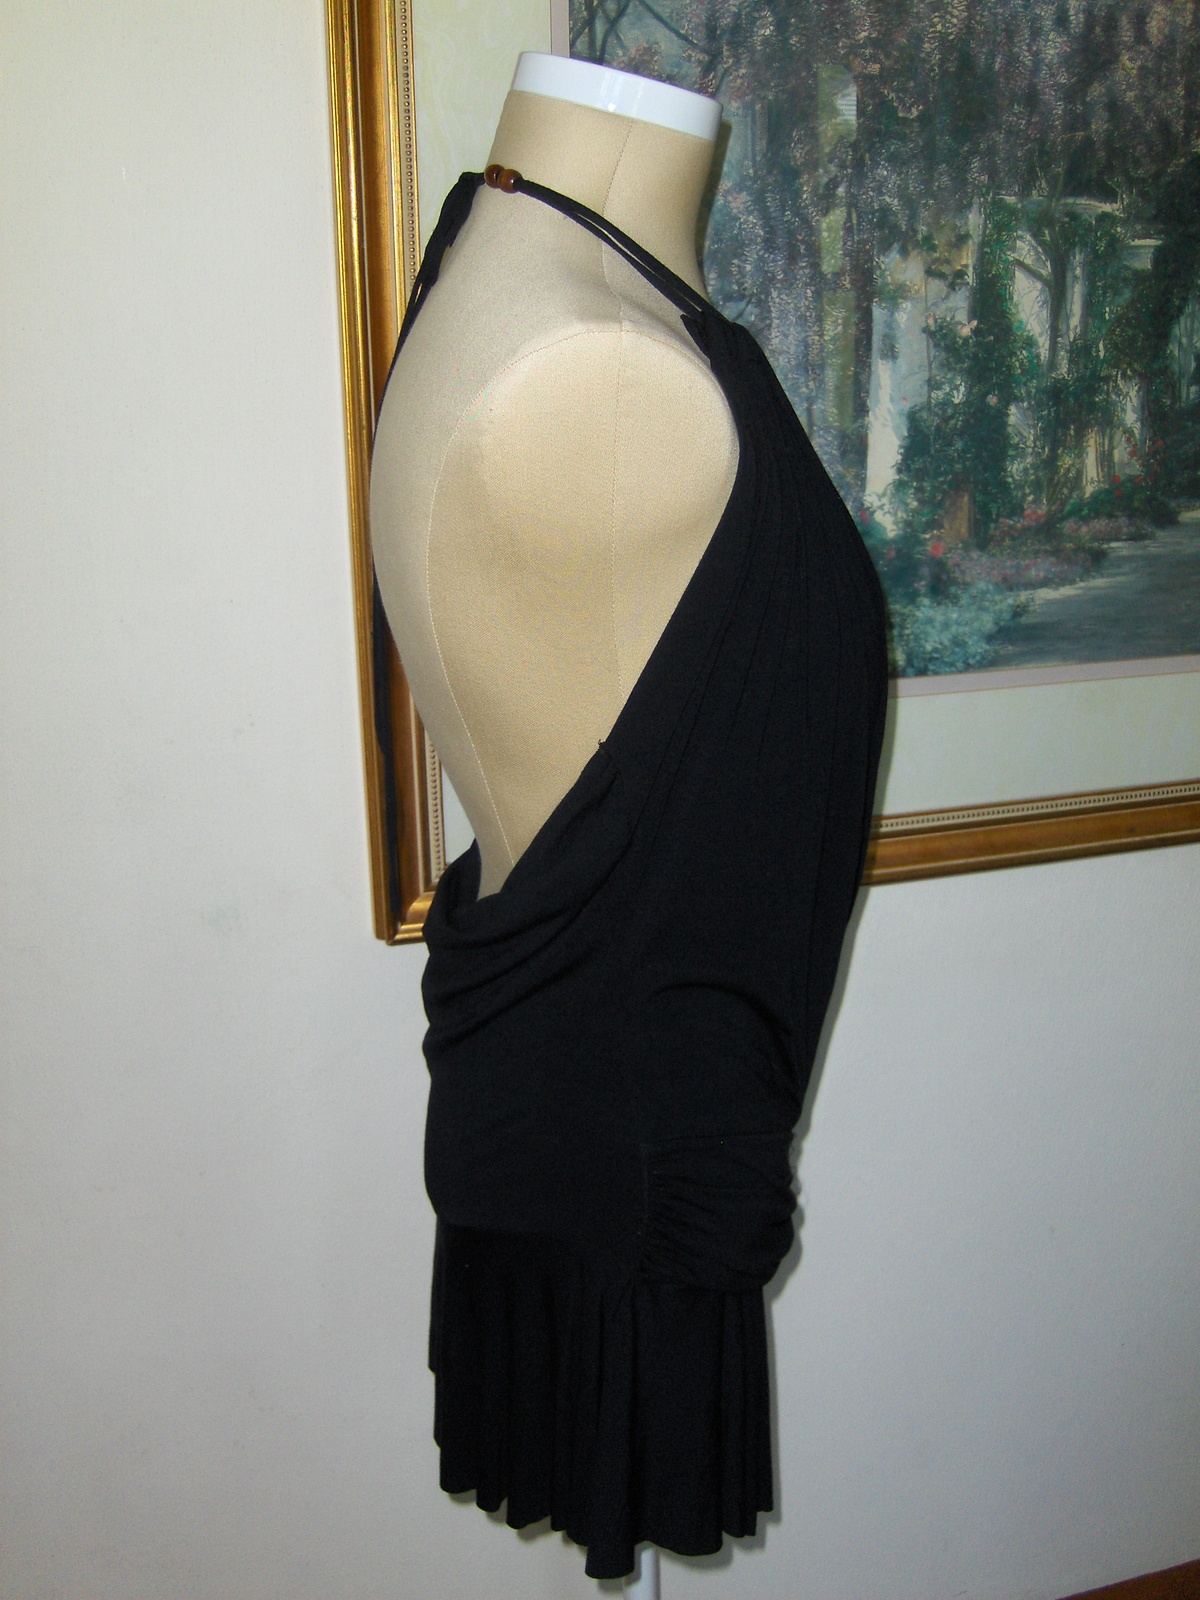 Swank Halter Top Black Strappy Womens Junior Large NWT Q8829